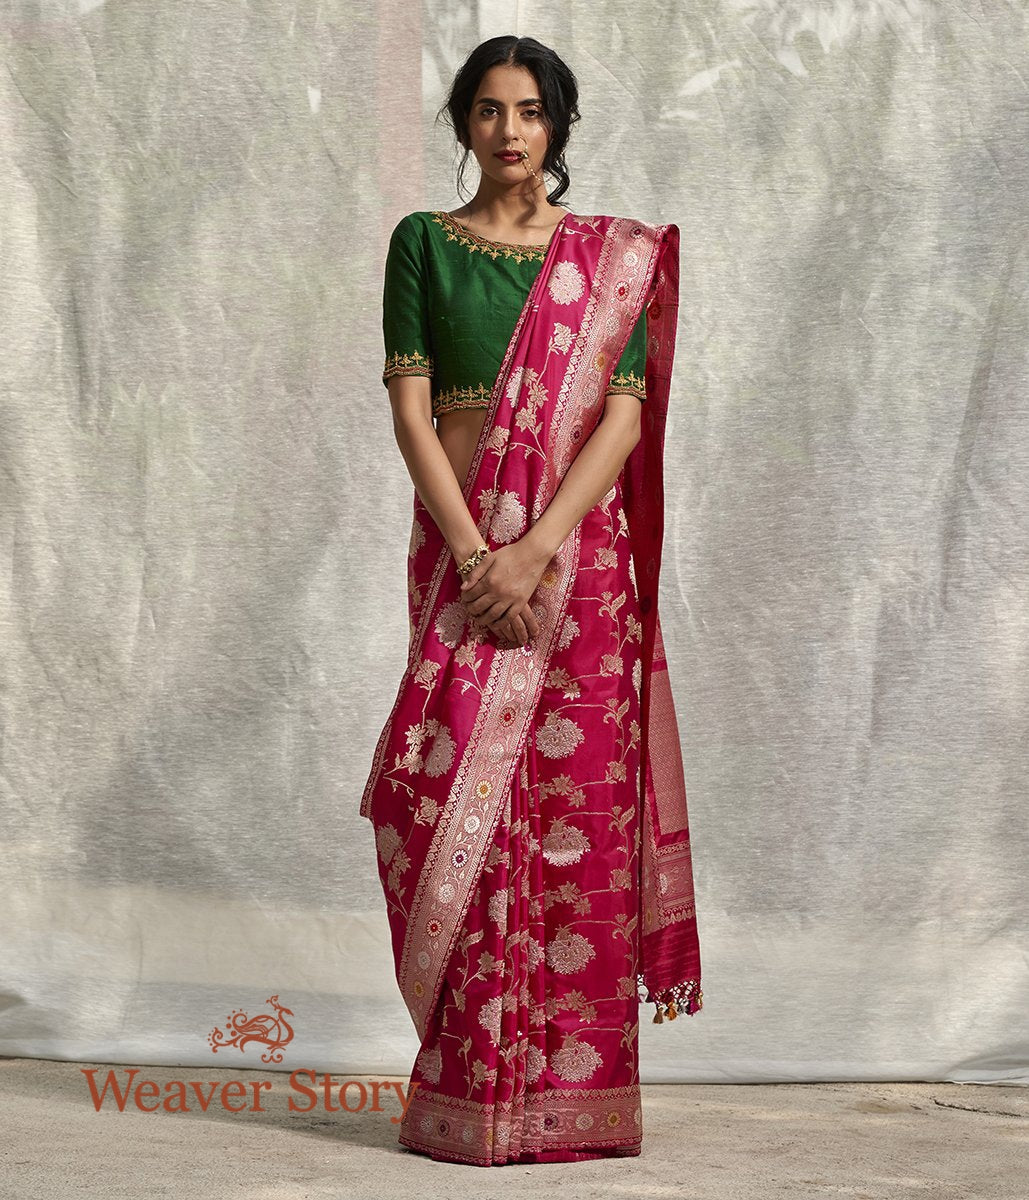 Handwoven Pink Sona Rupa Kadhwa Jangla Saree with Tissue Weft Border and Meenakari